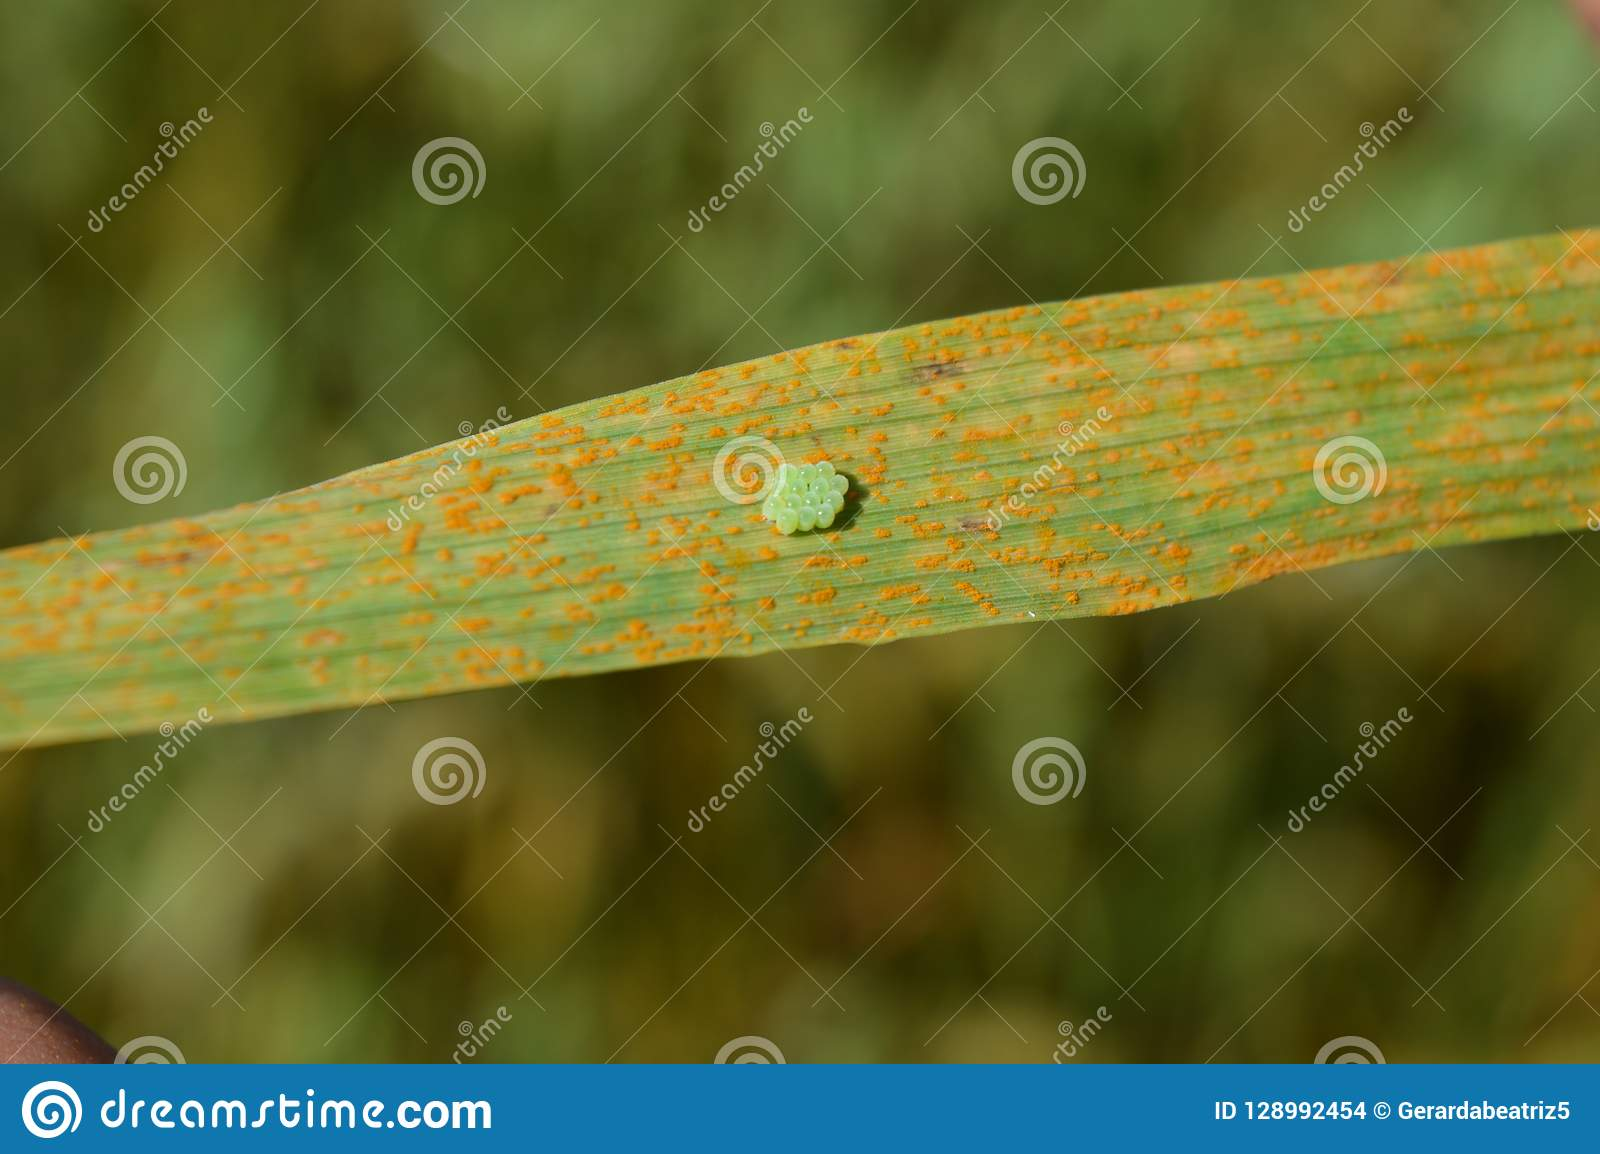 Bed Bug Eggs On Leaf Stock Photo Image Of Coloron Blue 128992454